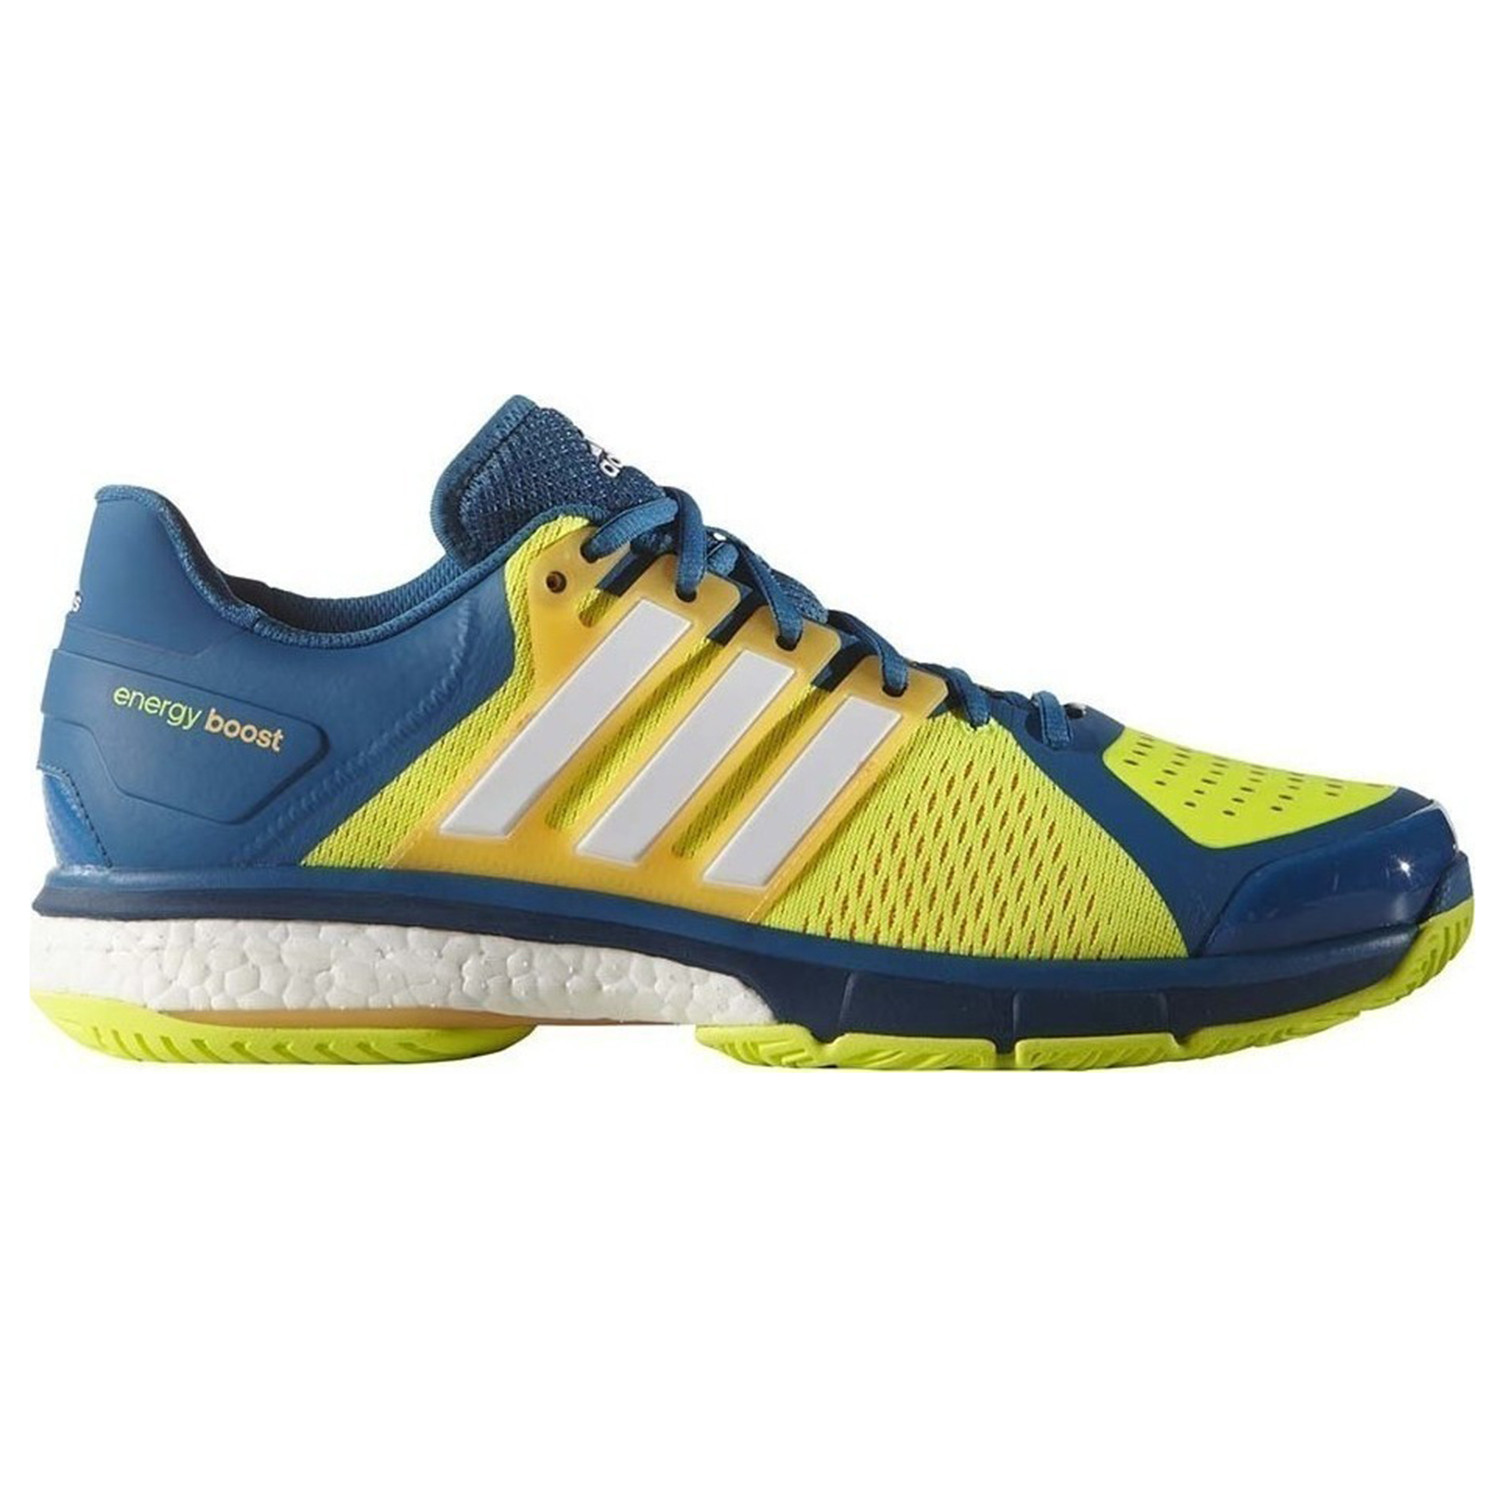 Homme Adidas Boost Jaune Energy Tennis Cher Pas Chaussure eED2WYHI9